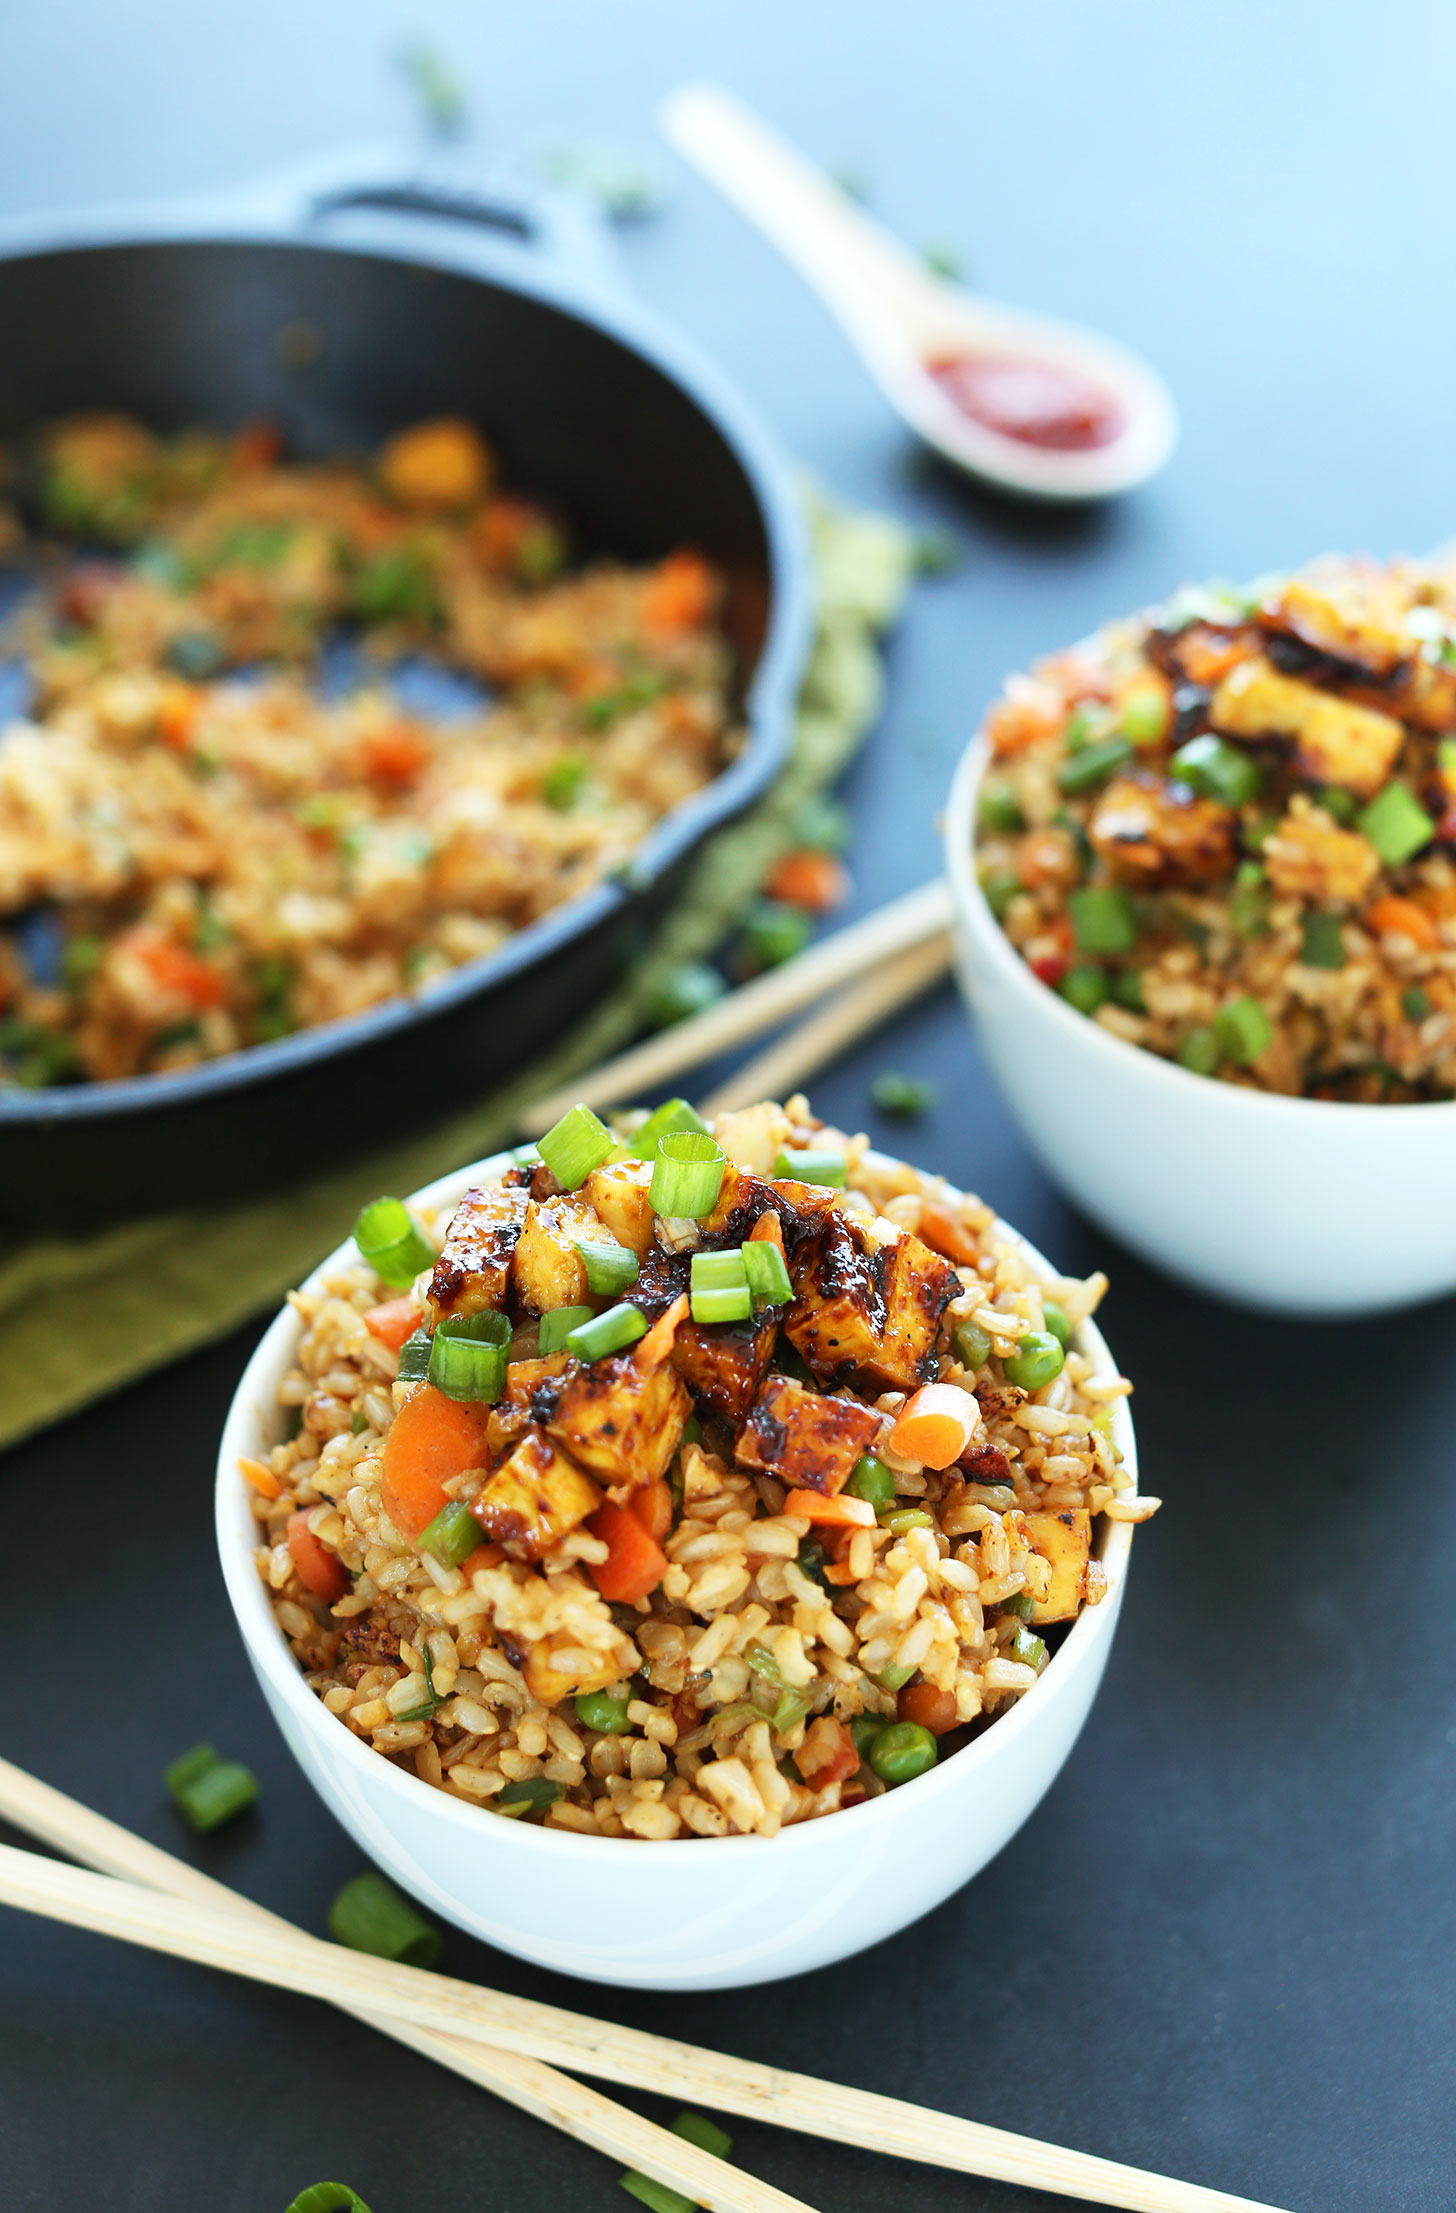 Bowls of our healthy fried rice with crispy tofu for a vegan meal : cold plate dinner ideas - pezcame.com